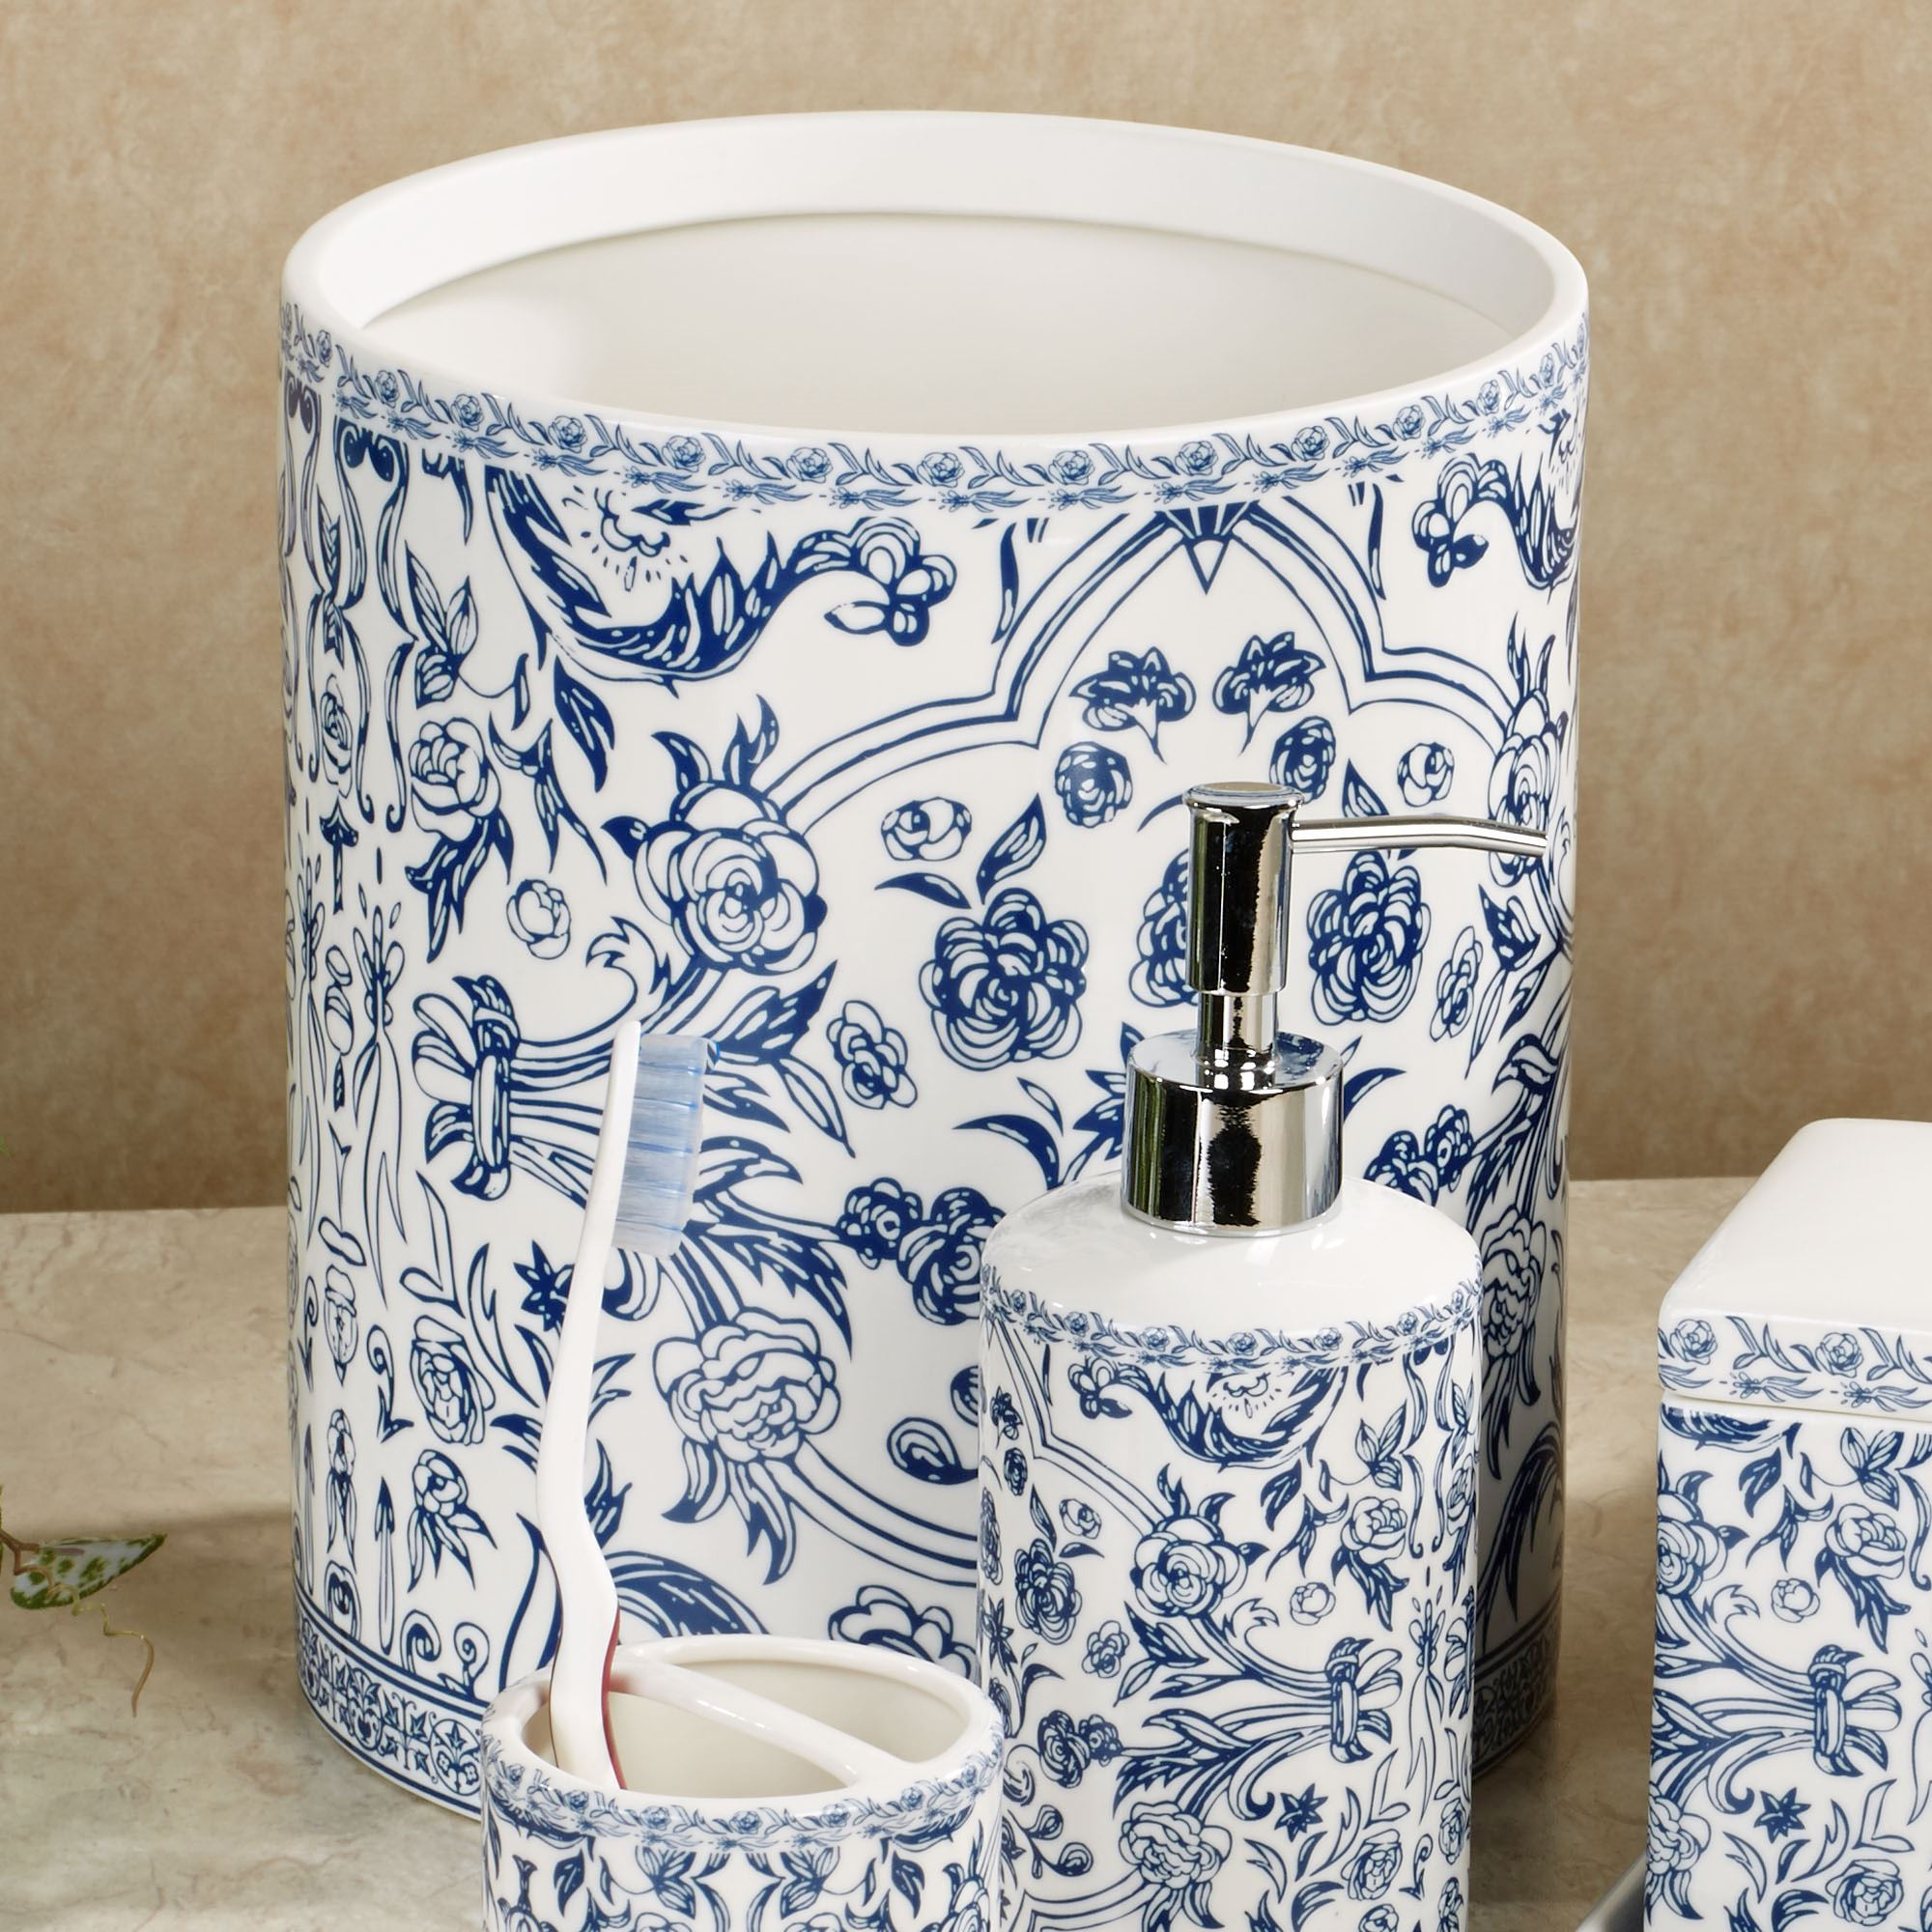 Orsay blue toile porcelain bath accessories for Blue and white bathroom decor